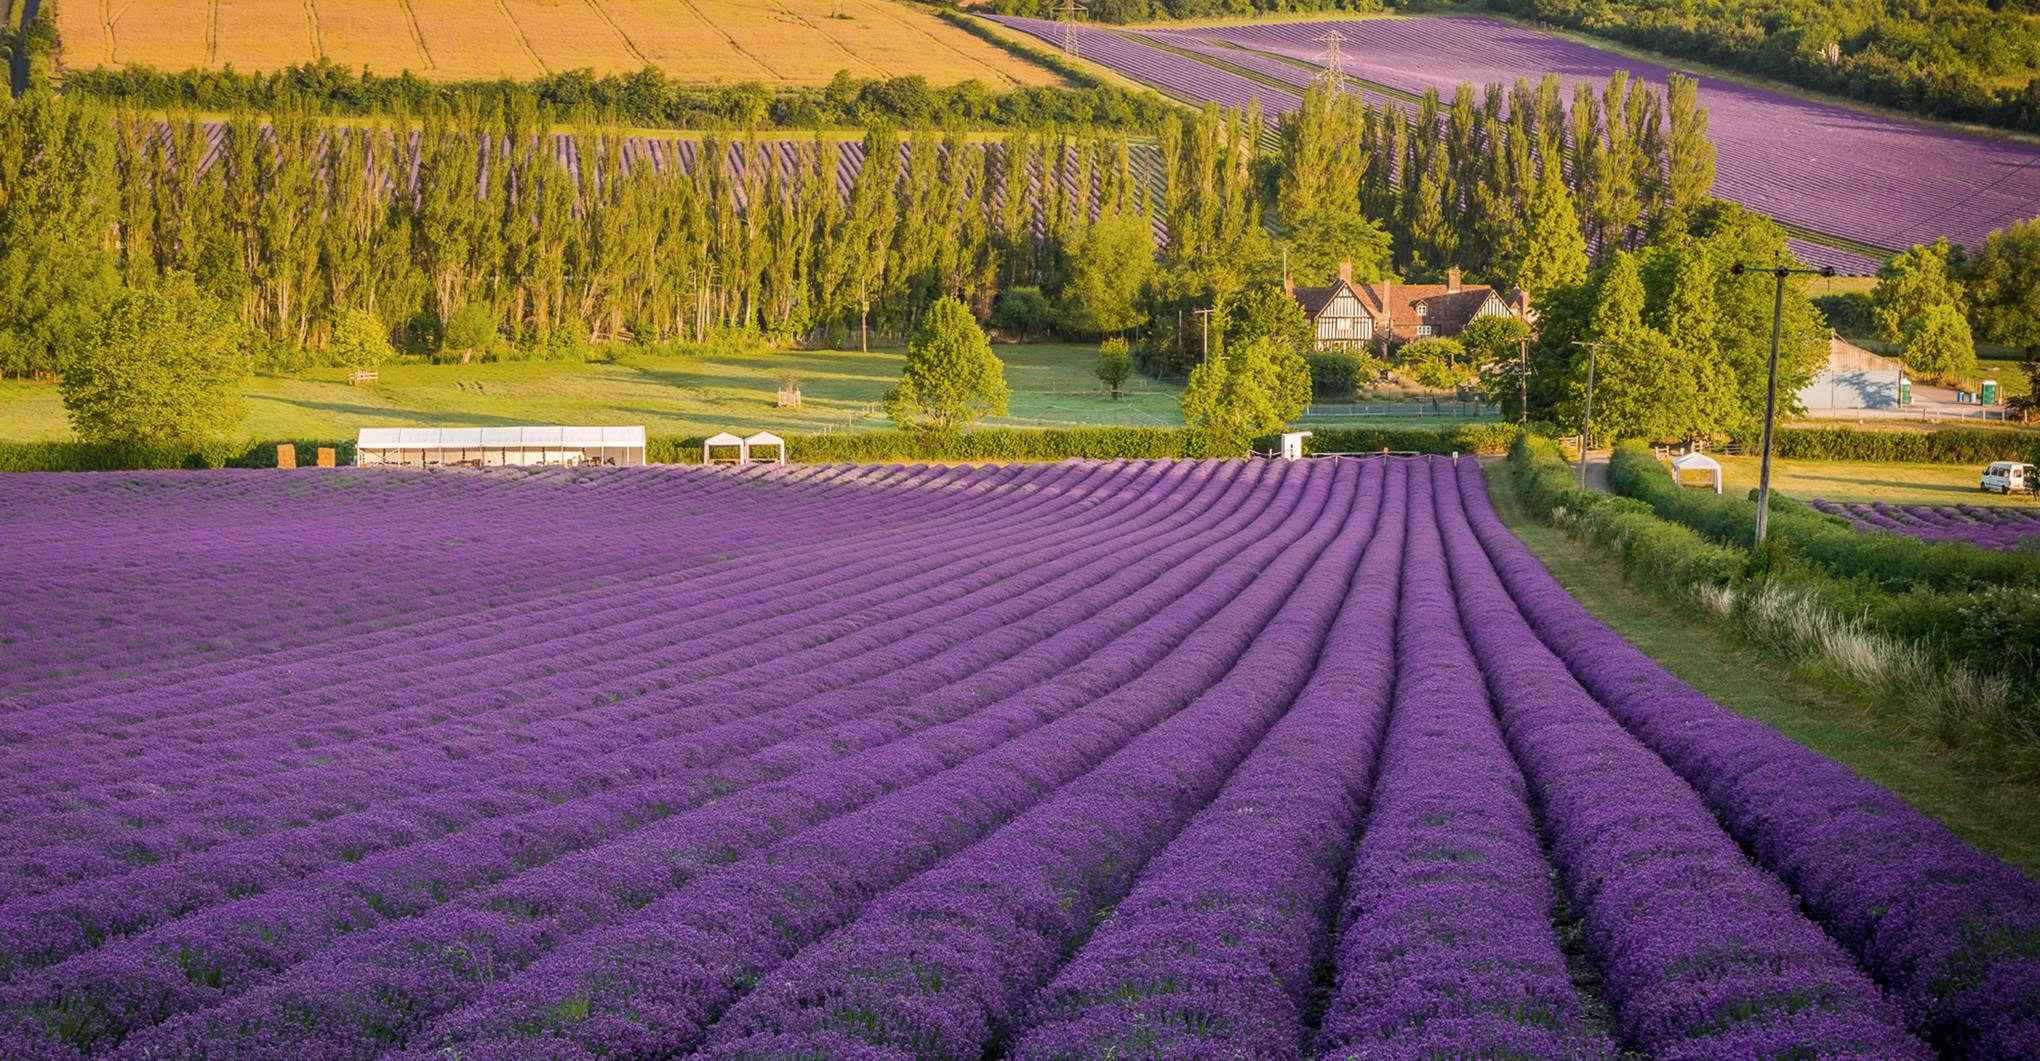 The most beautiful lavender fields in the UK